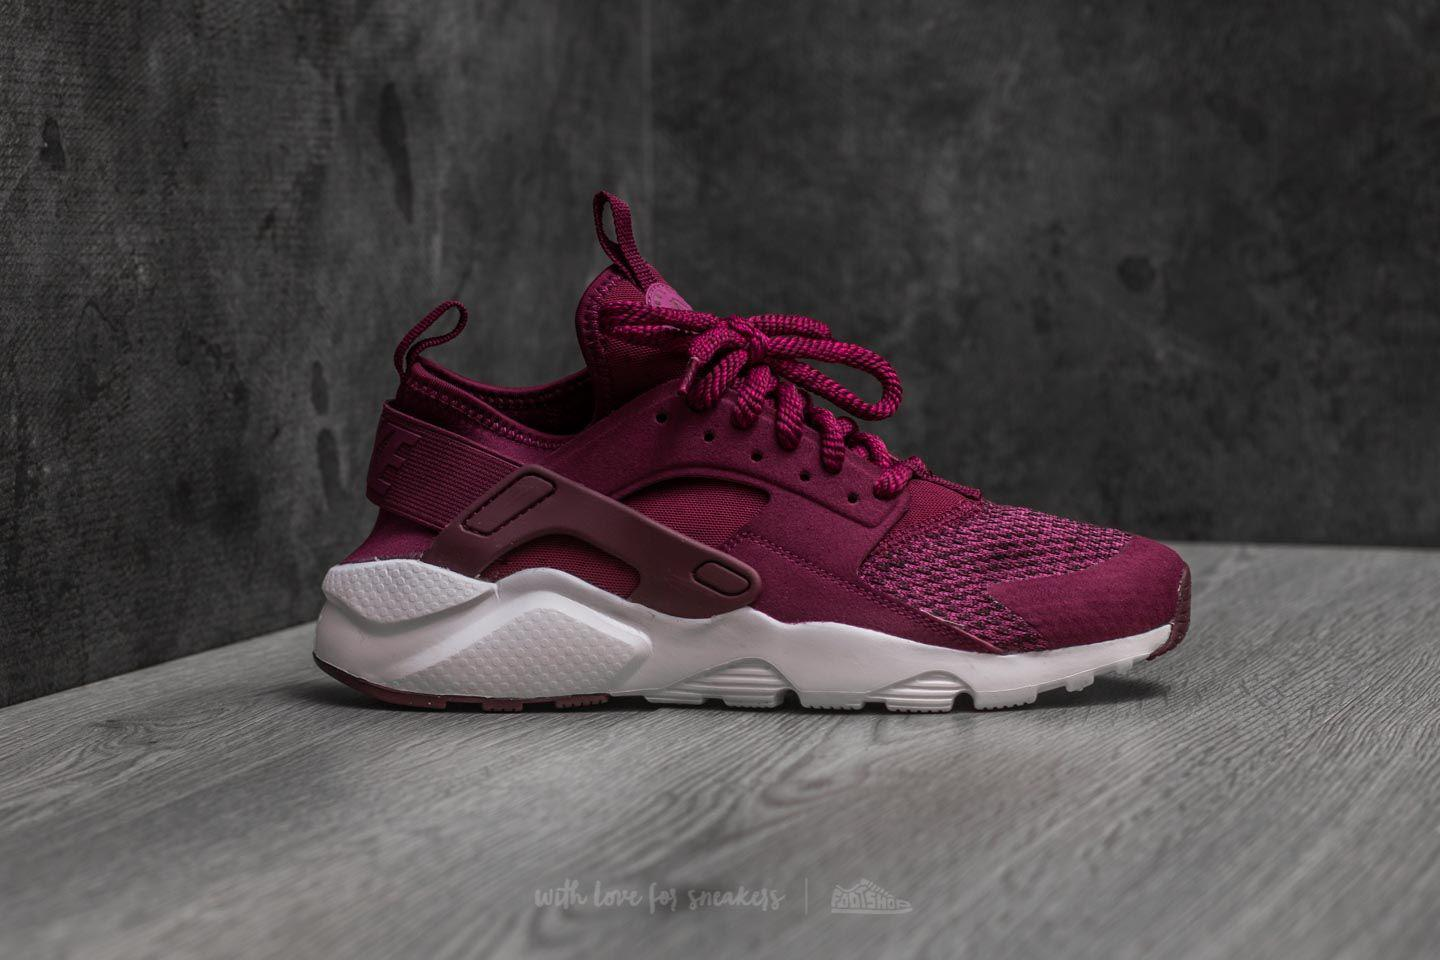 5df52df8ed653 Lyst - Nike Air Huarache Run Ultra Se (gs) Bordeaux  Bordeaux-tea Berry